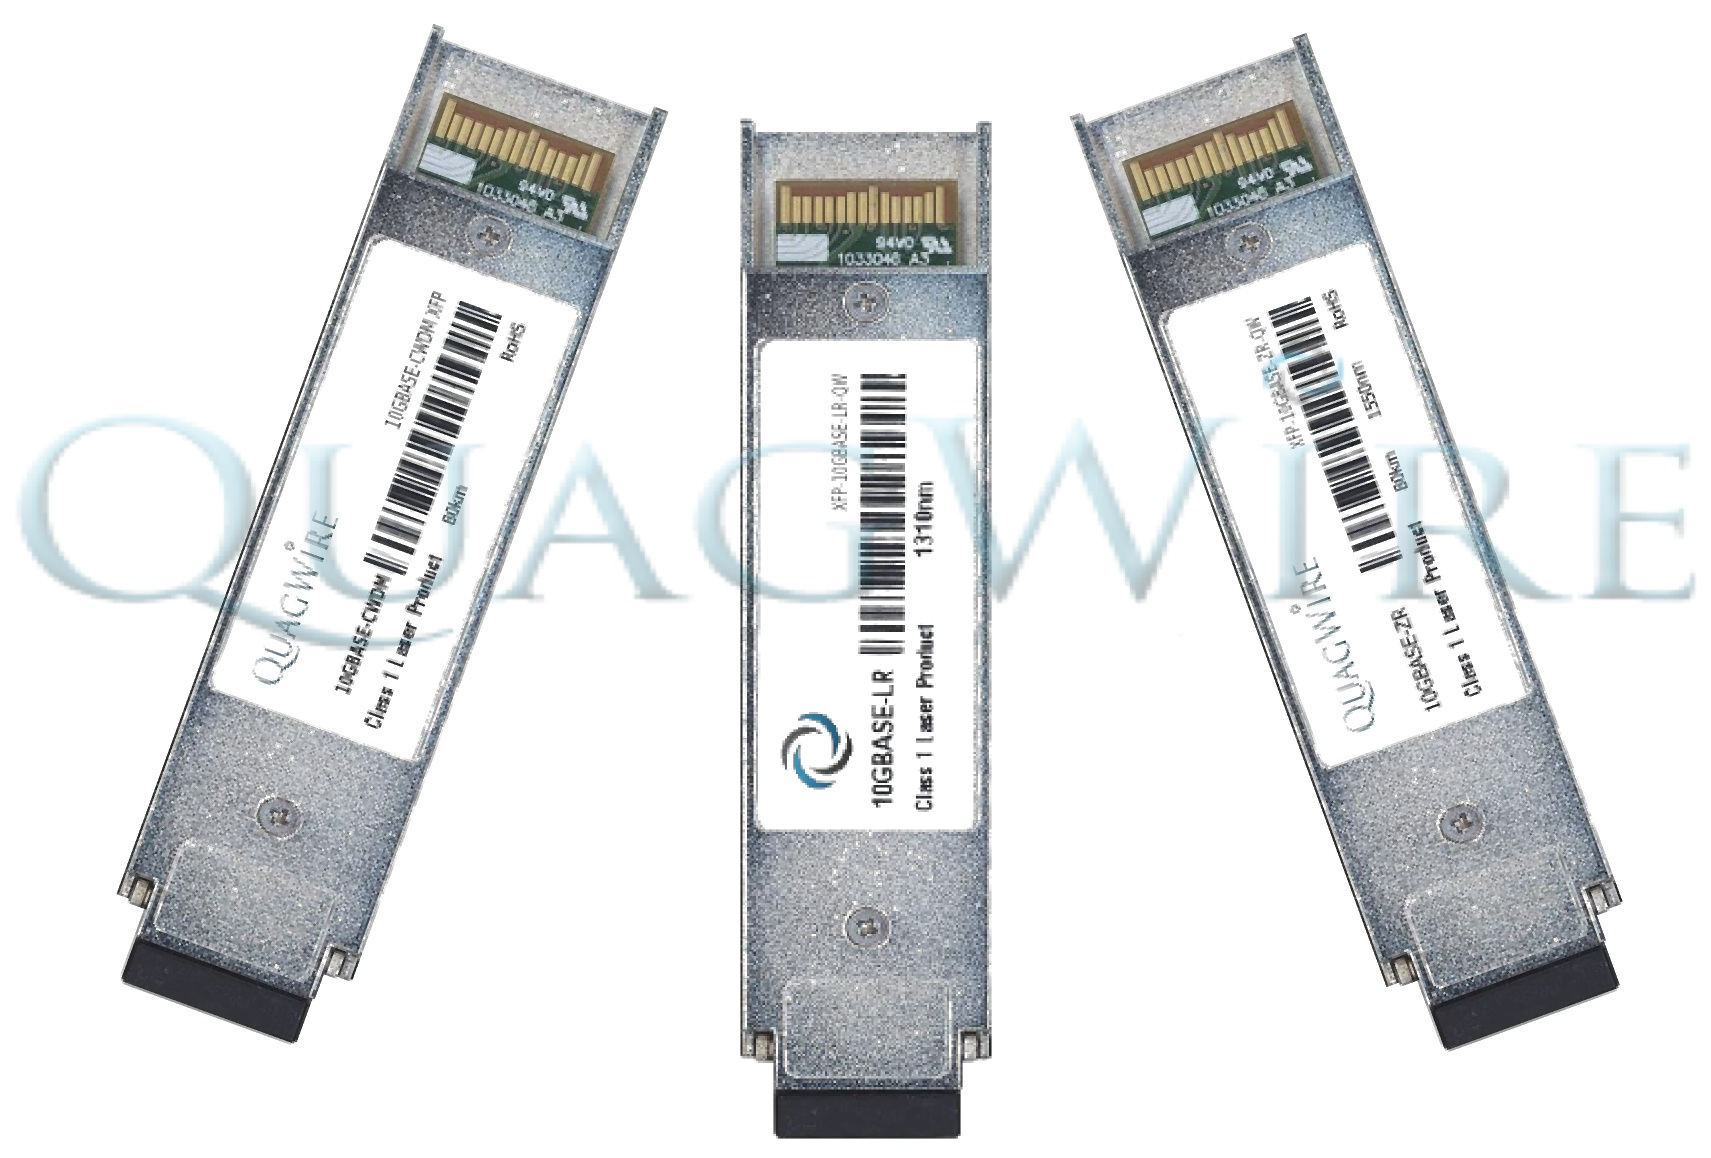 QSFP-40G-LR4 – Alcatel Compatible QSFP+ Transceiver